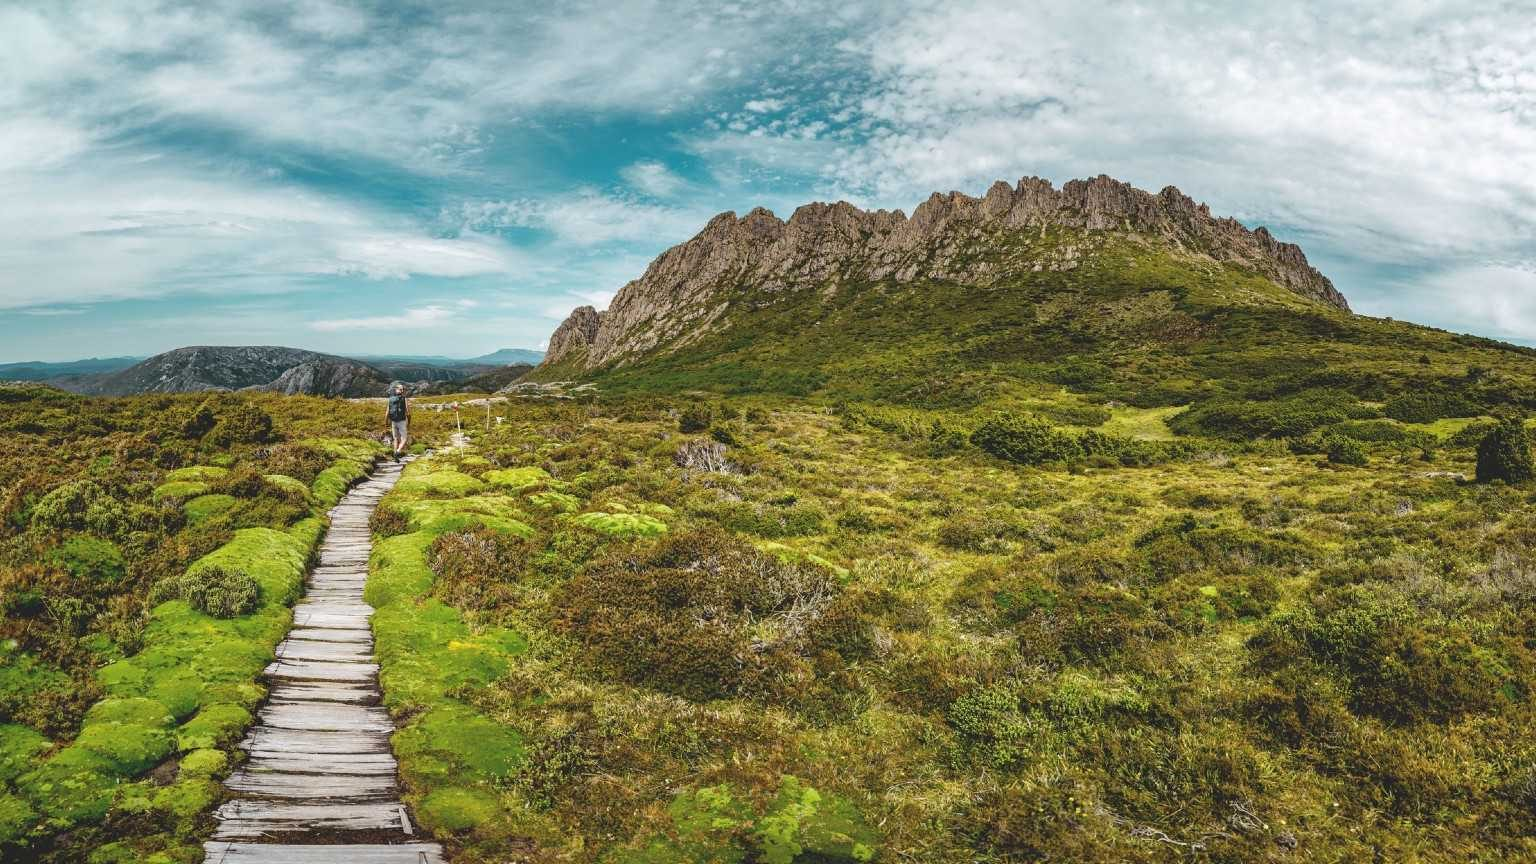 Boardwalk Amidst Moss Covered Landscape Against Cloudy Sky